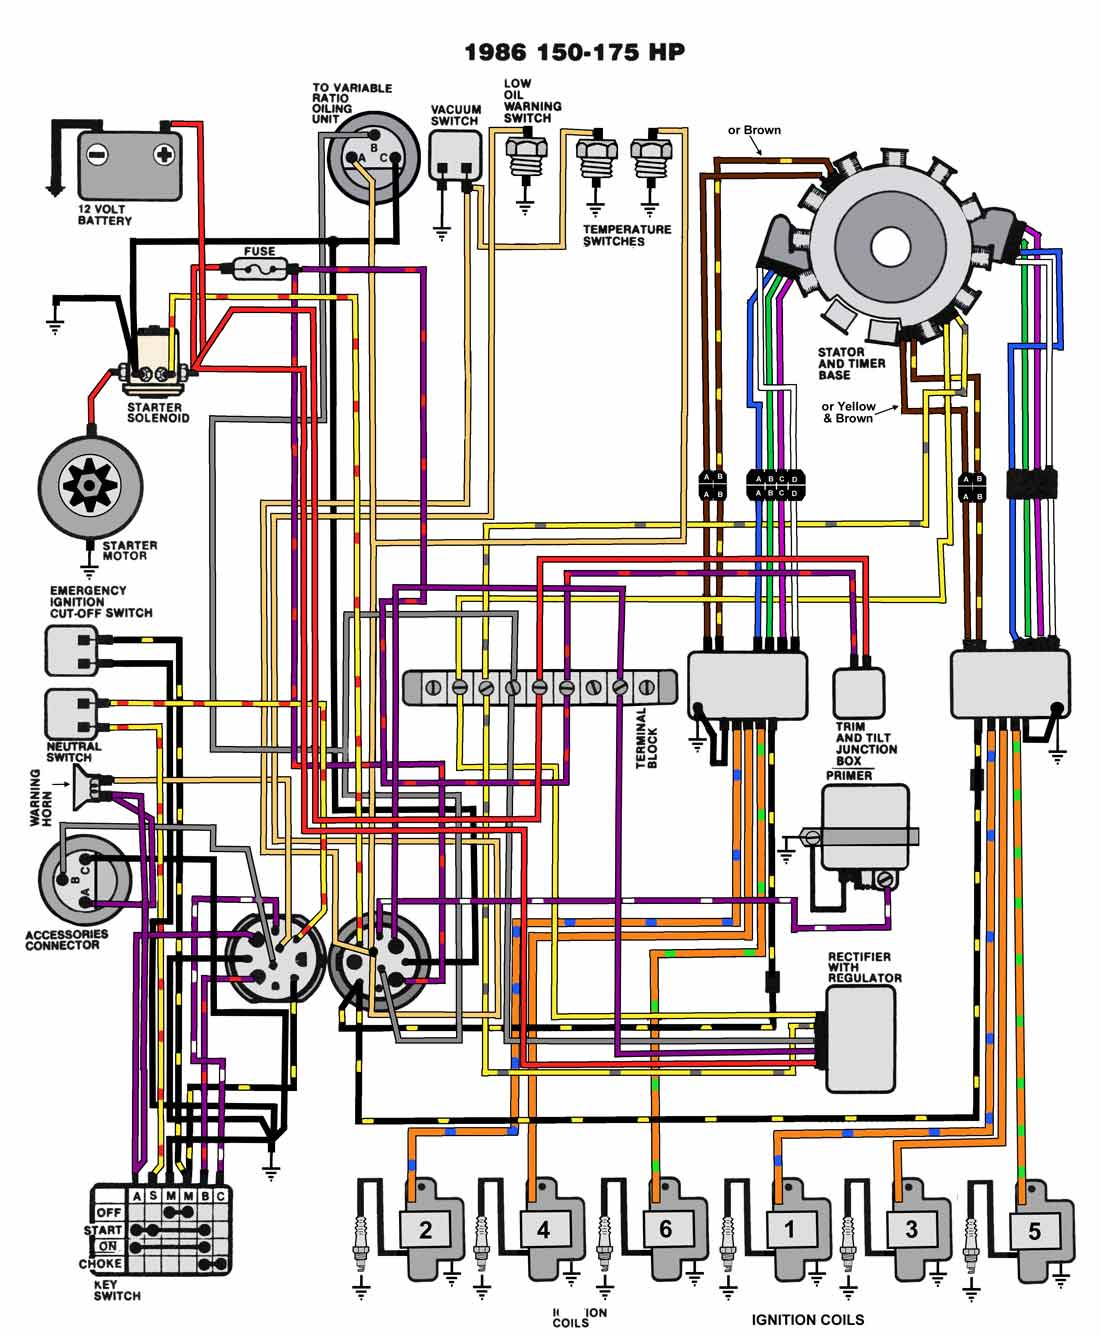 1986_150_175 mastertech marine evinrude johnson outboard wiring diagrams Yamaha Outboard Wiring Diagram at bakdesigns.co